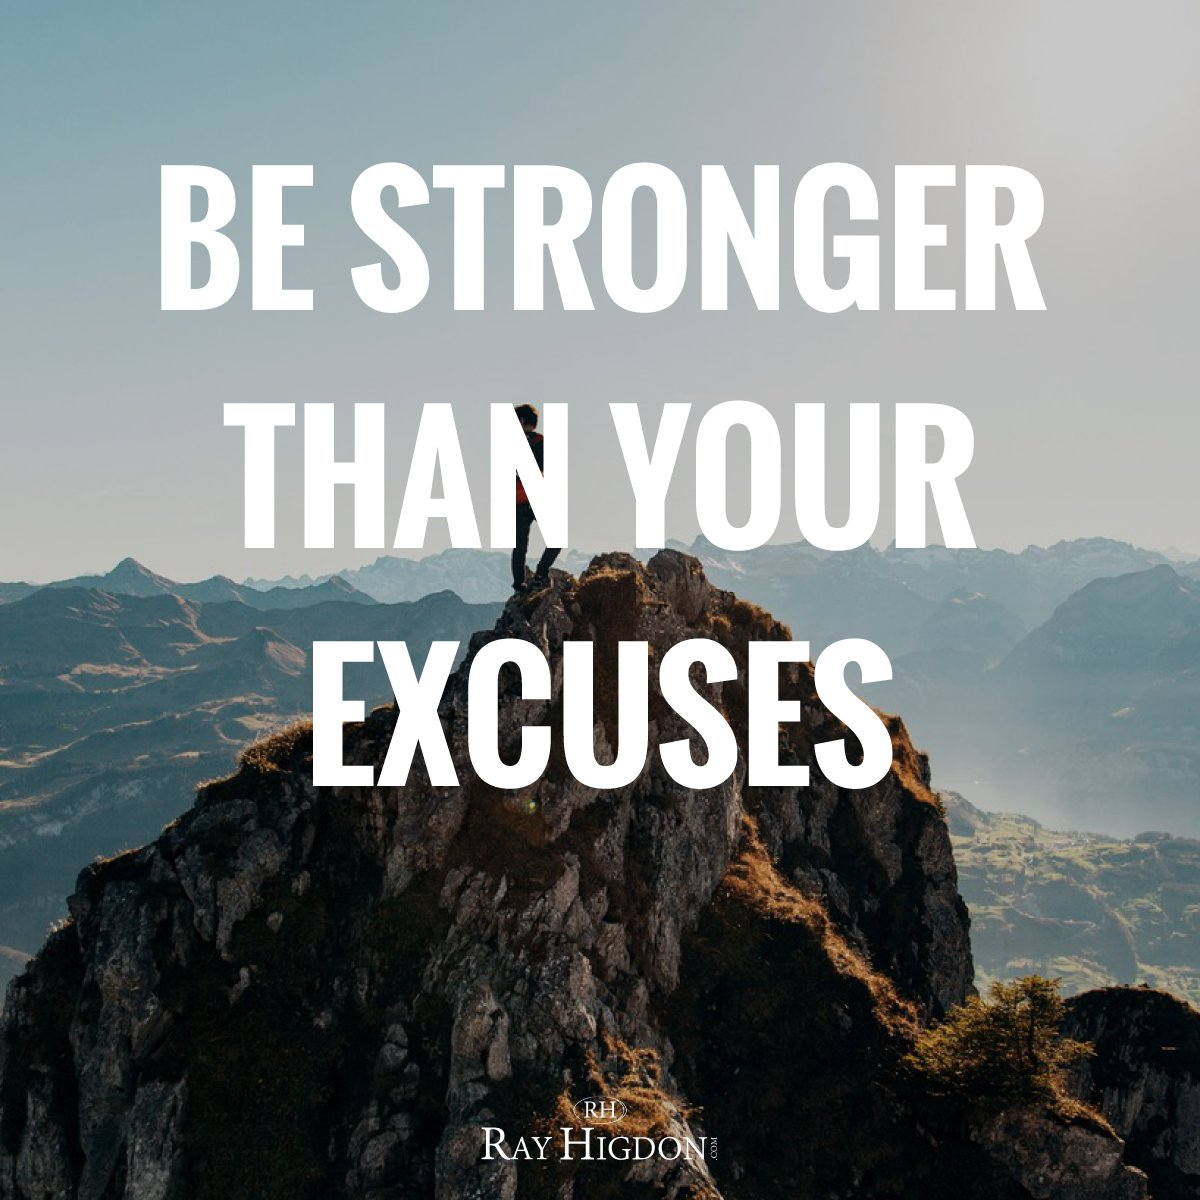 Be stronger than your excuses. https://t.co/O3PYhqZqKU